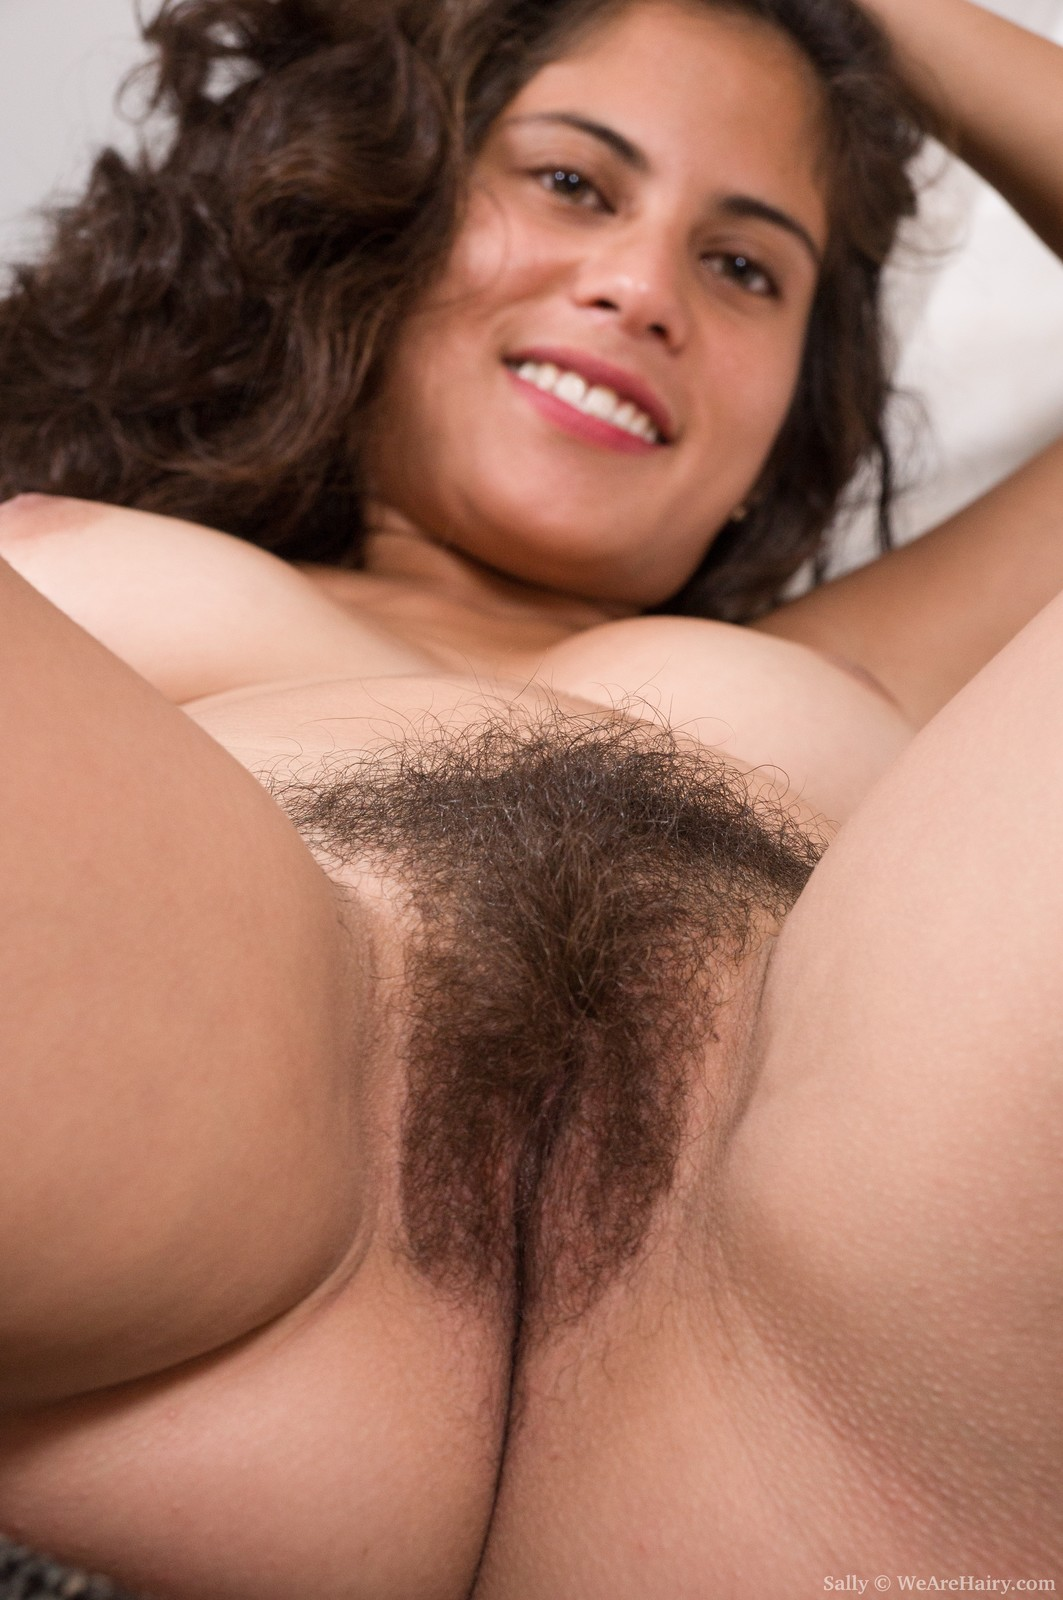 mexican hairy wet pussy | the hairy lady blog